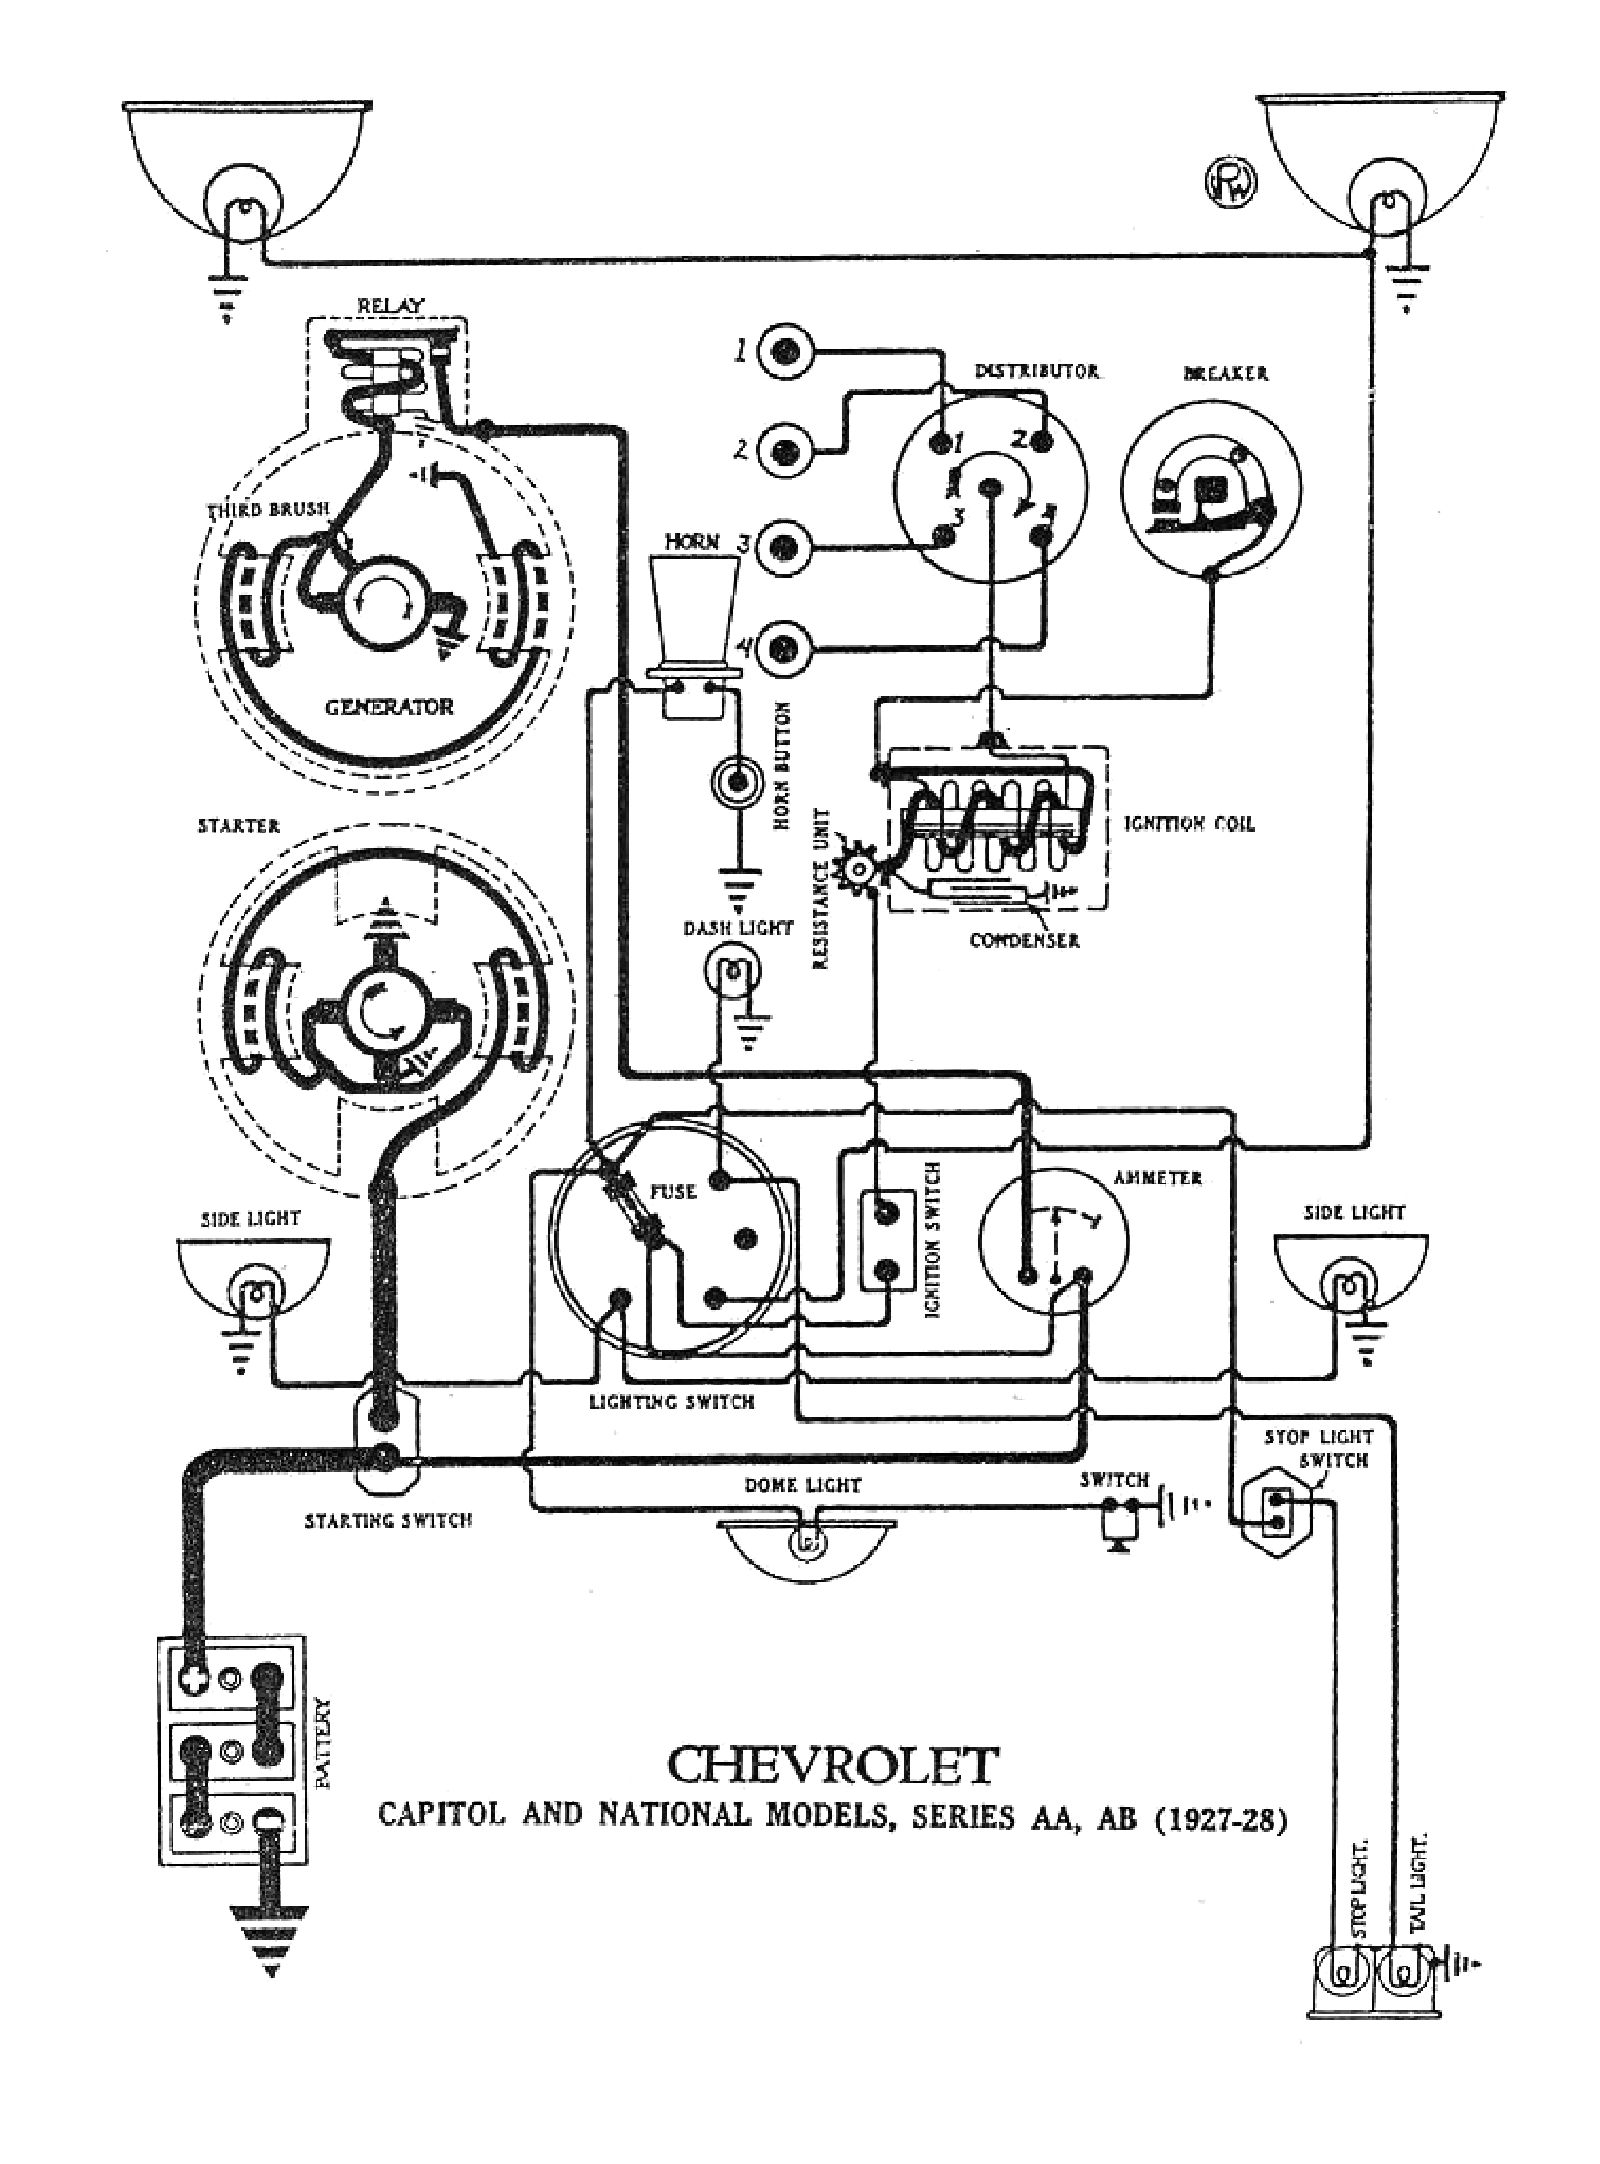 ... 1974 chevy c20 350 ignition diagram wiring house wiring diagram rh  maxturner co 1974 chevy pickup